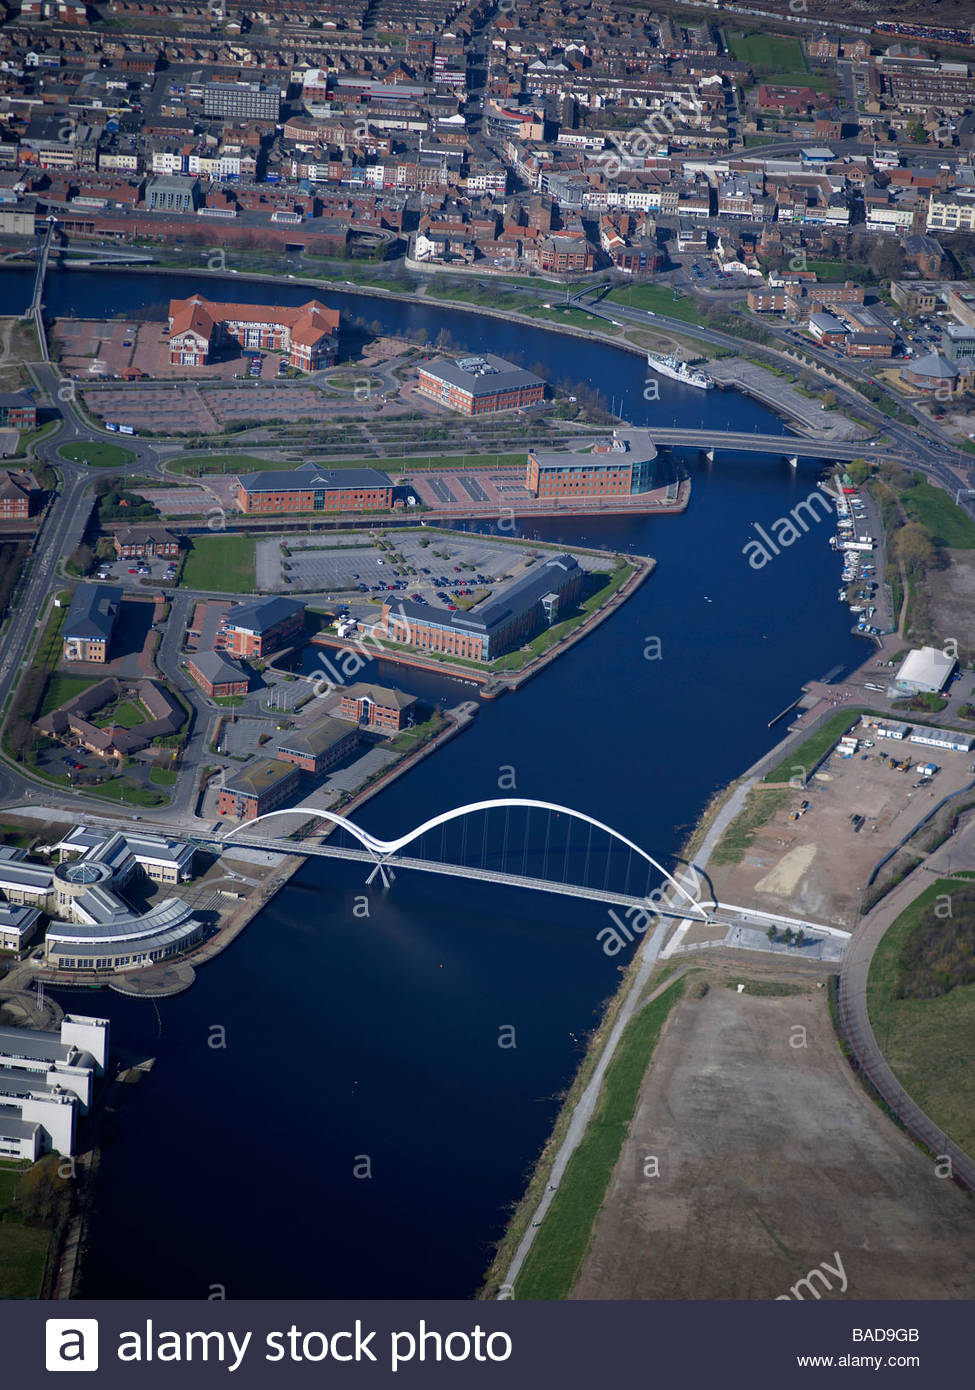 River Tees at Stockton upon Tees, North East England, showing the new Infinity pedestrian bridge and the tees develoment - Stock Image